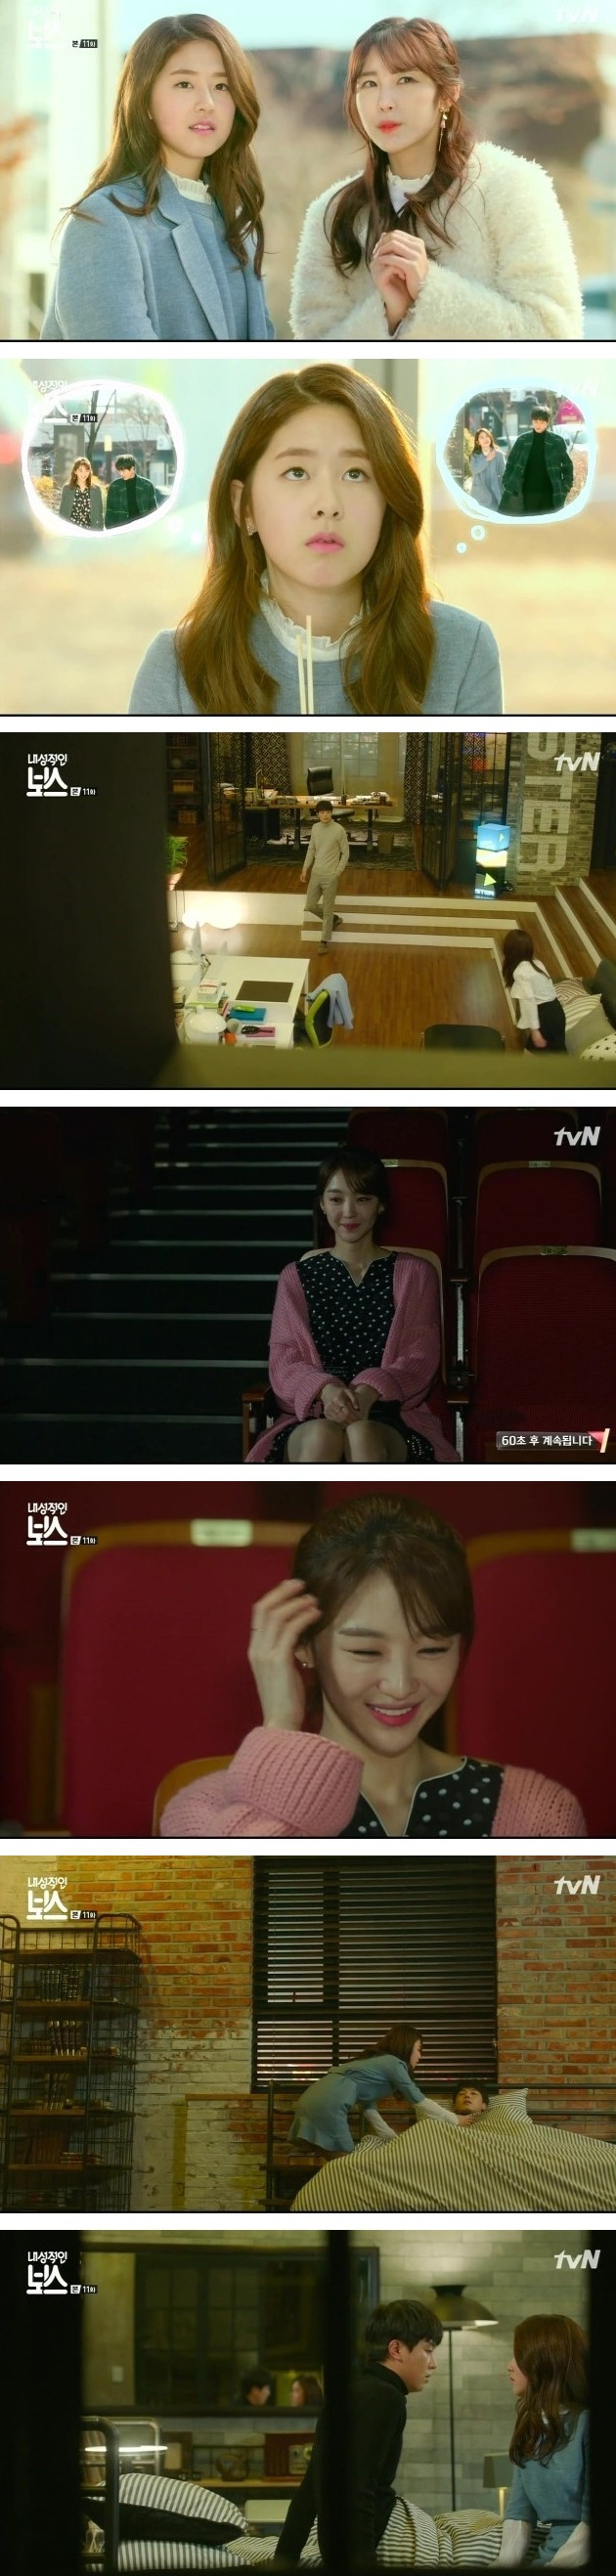 Added episode 11 captures for the Korean drama 'Introvert Boss'.